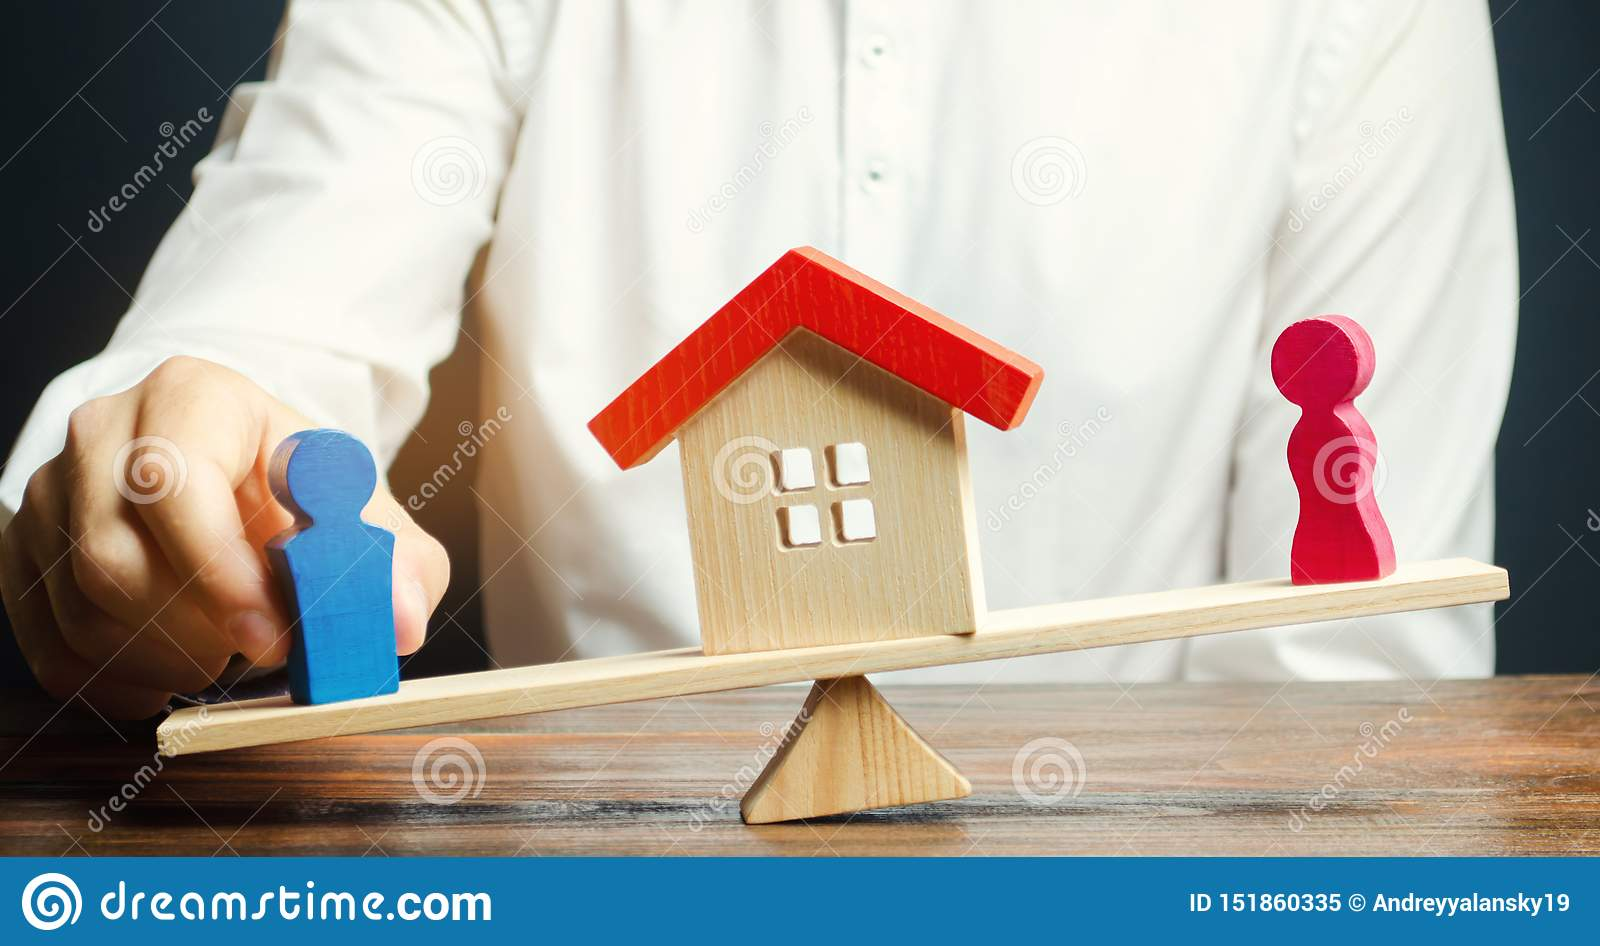 Wooden figures of a man and a woman on scales and a house between them. Division of property by legal means. Clarification of